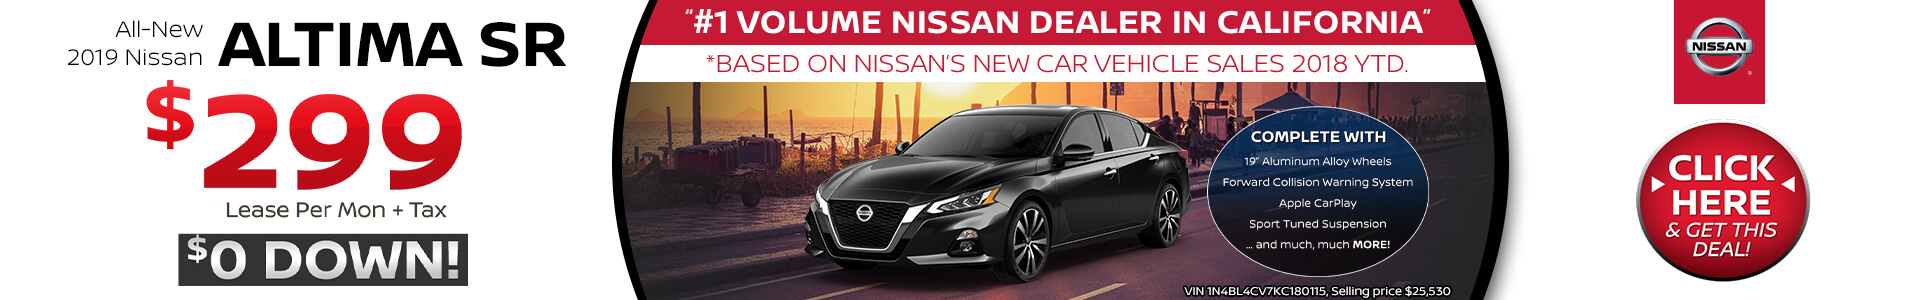 Nissan Altima Lease $299